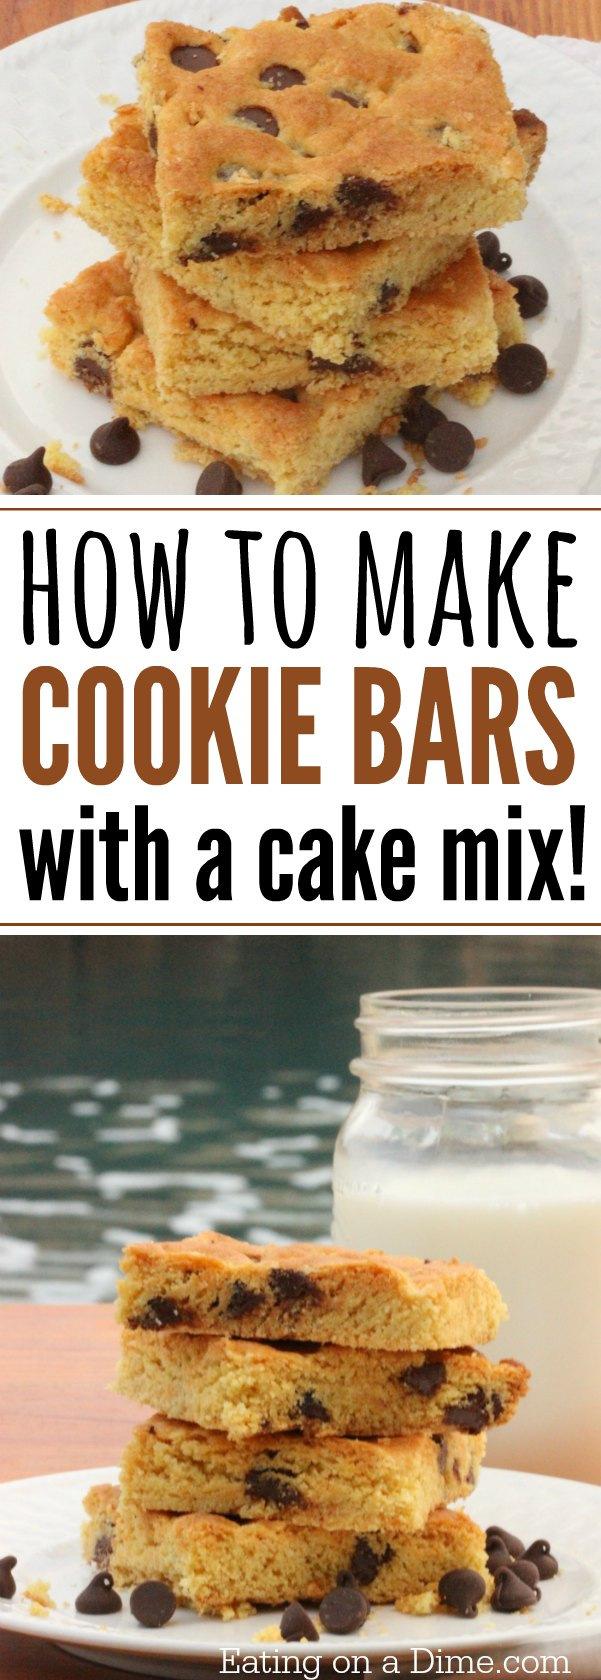 How to make Cookie cake with Cake mix - the best Chocolate Chip cookie Cake recipe that you can make with a cake mix. My favorite of cake mix recipes.